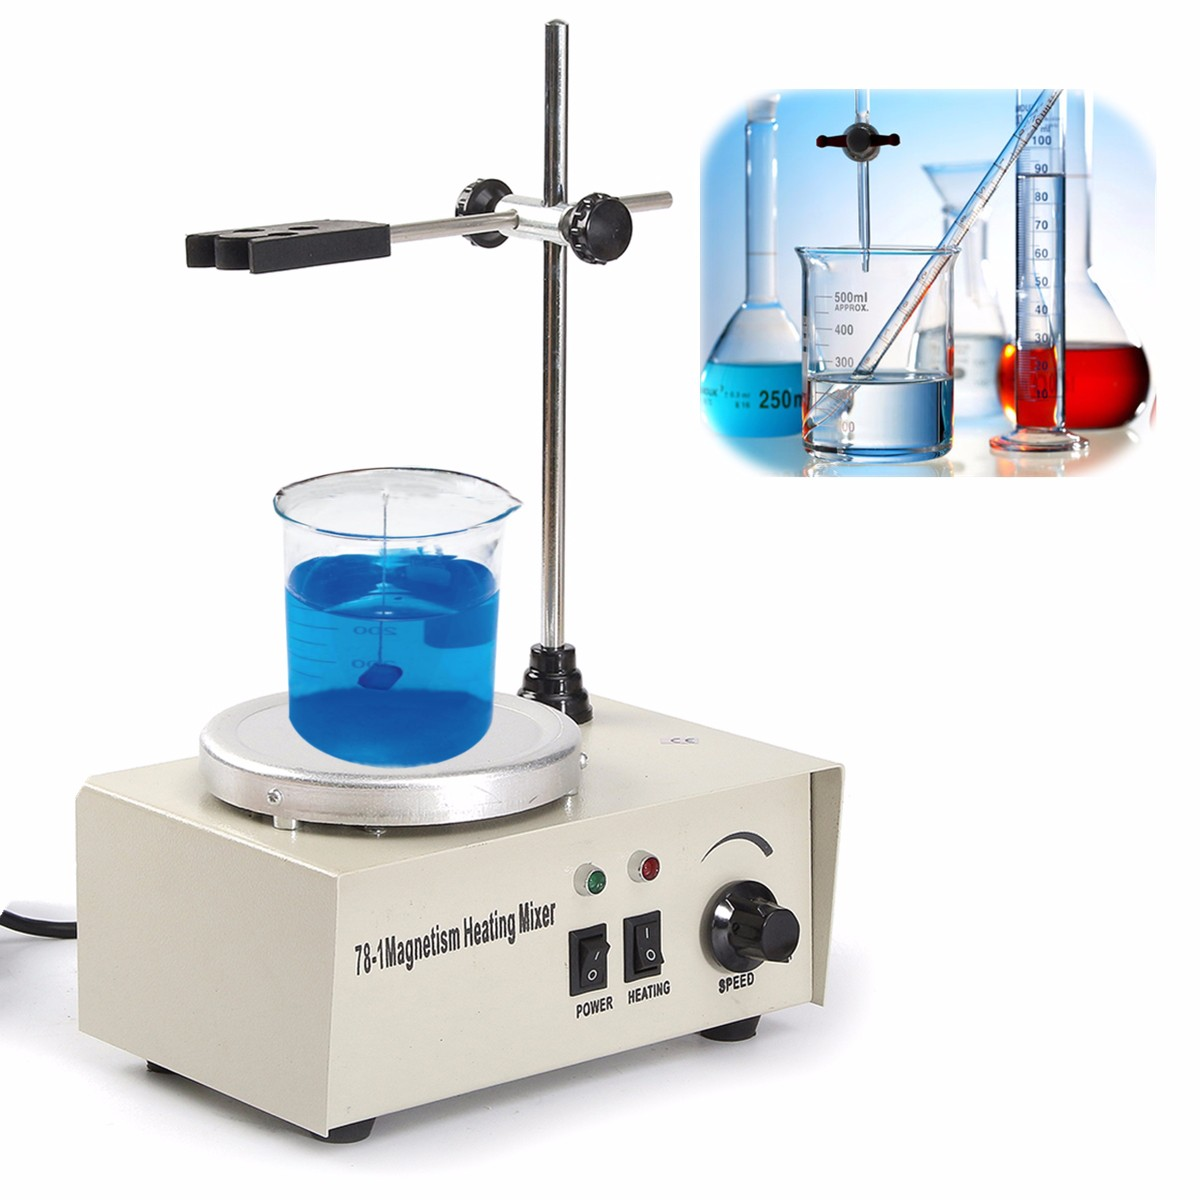 KiCute 1Set Laboratory Chemistry Magnetic Stirrer Magnetic Stirrer Home Laboratory Magnetic Mixer Stirrers Apparatus  220V 50HZKiCute 1Set Laboratory Chemistry Magnetic Stirrer Magnetic Stirrer Home Laboratory Magnetic Mixer Stirrers Apparatus  220V 50HZ